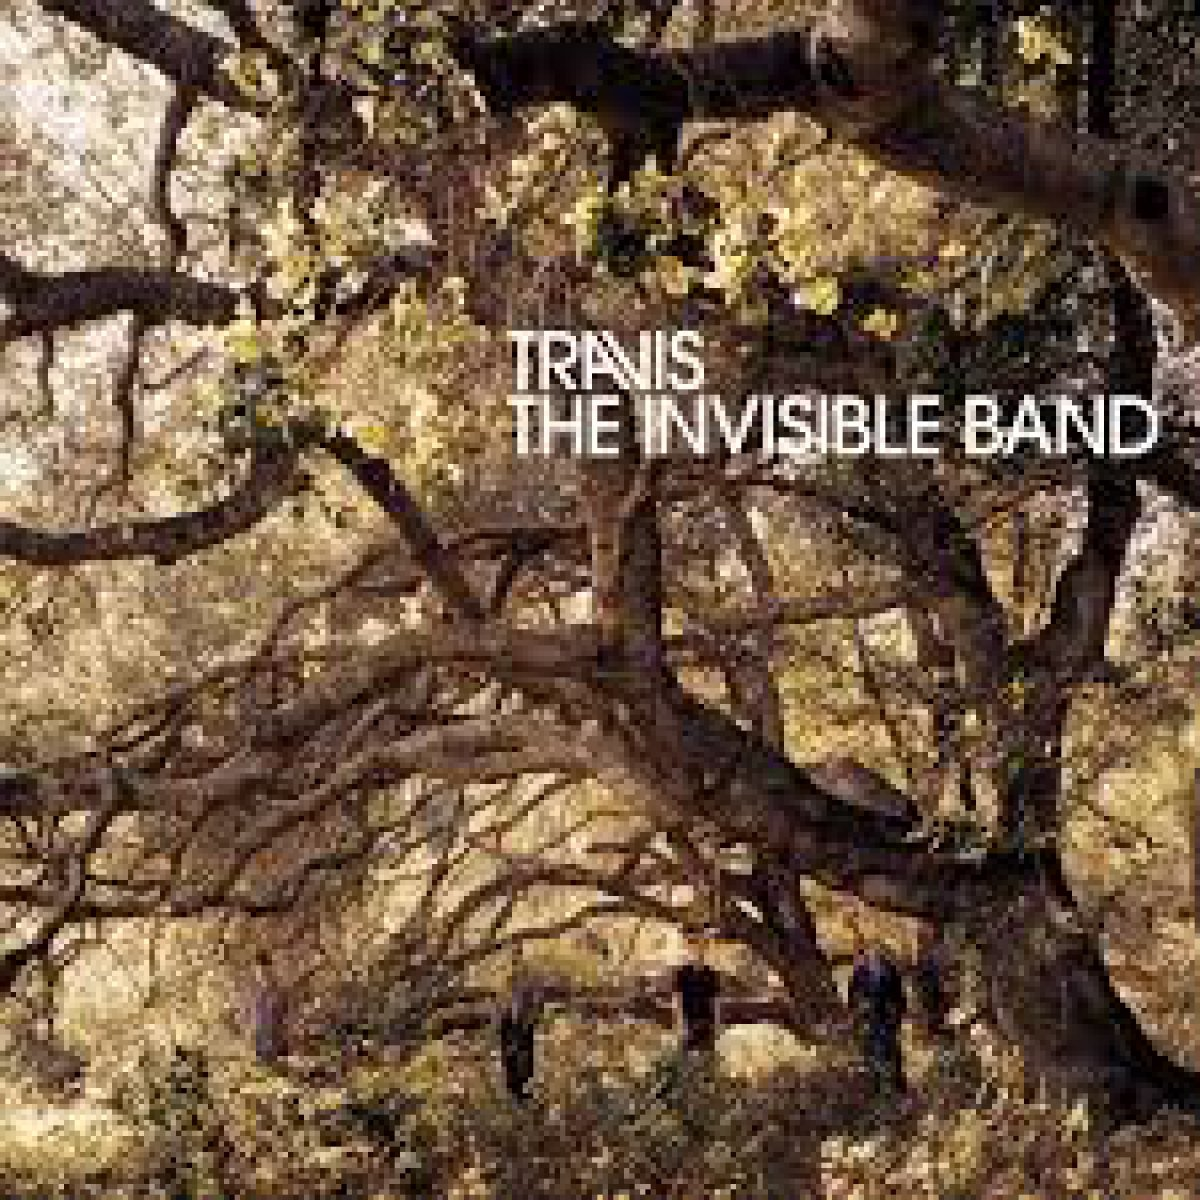 'The Invisible Band' - Travis